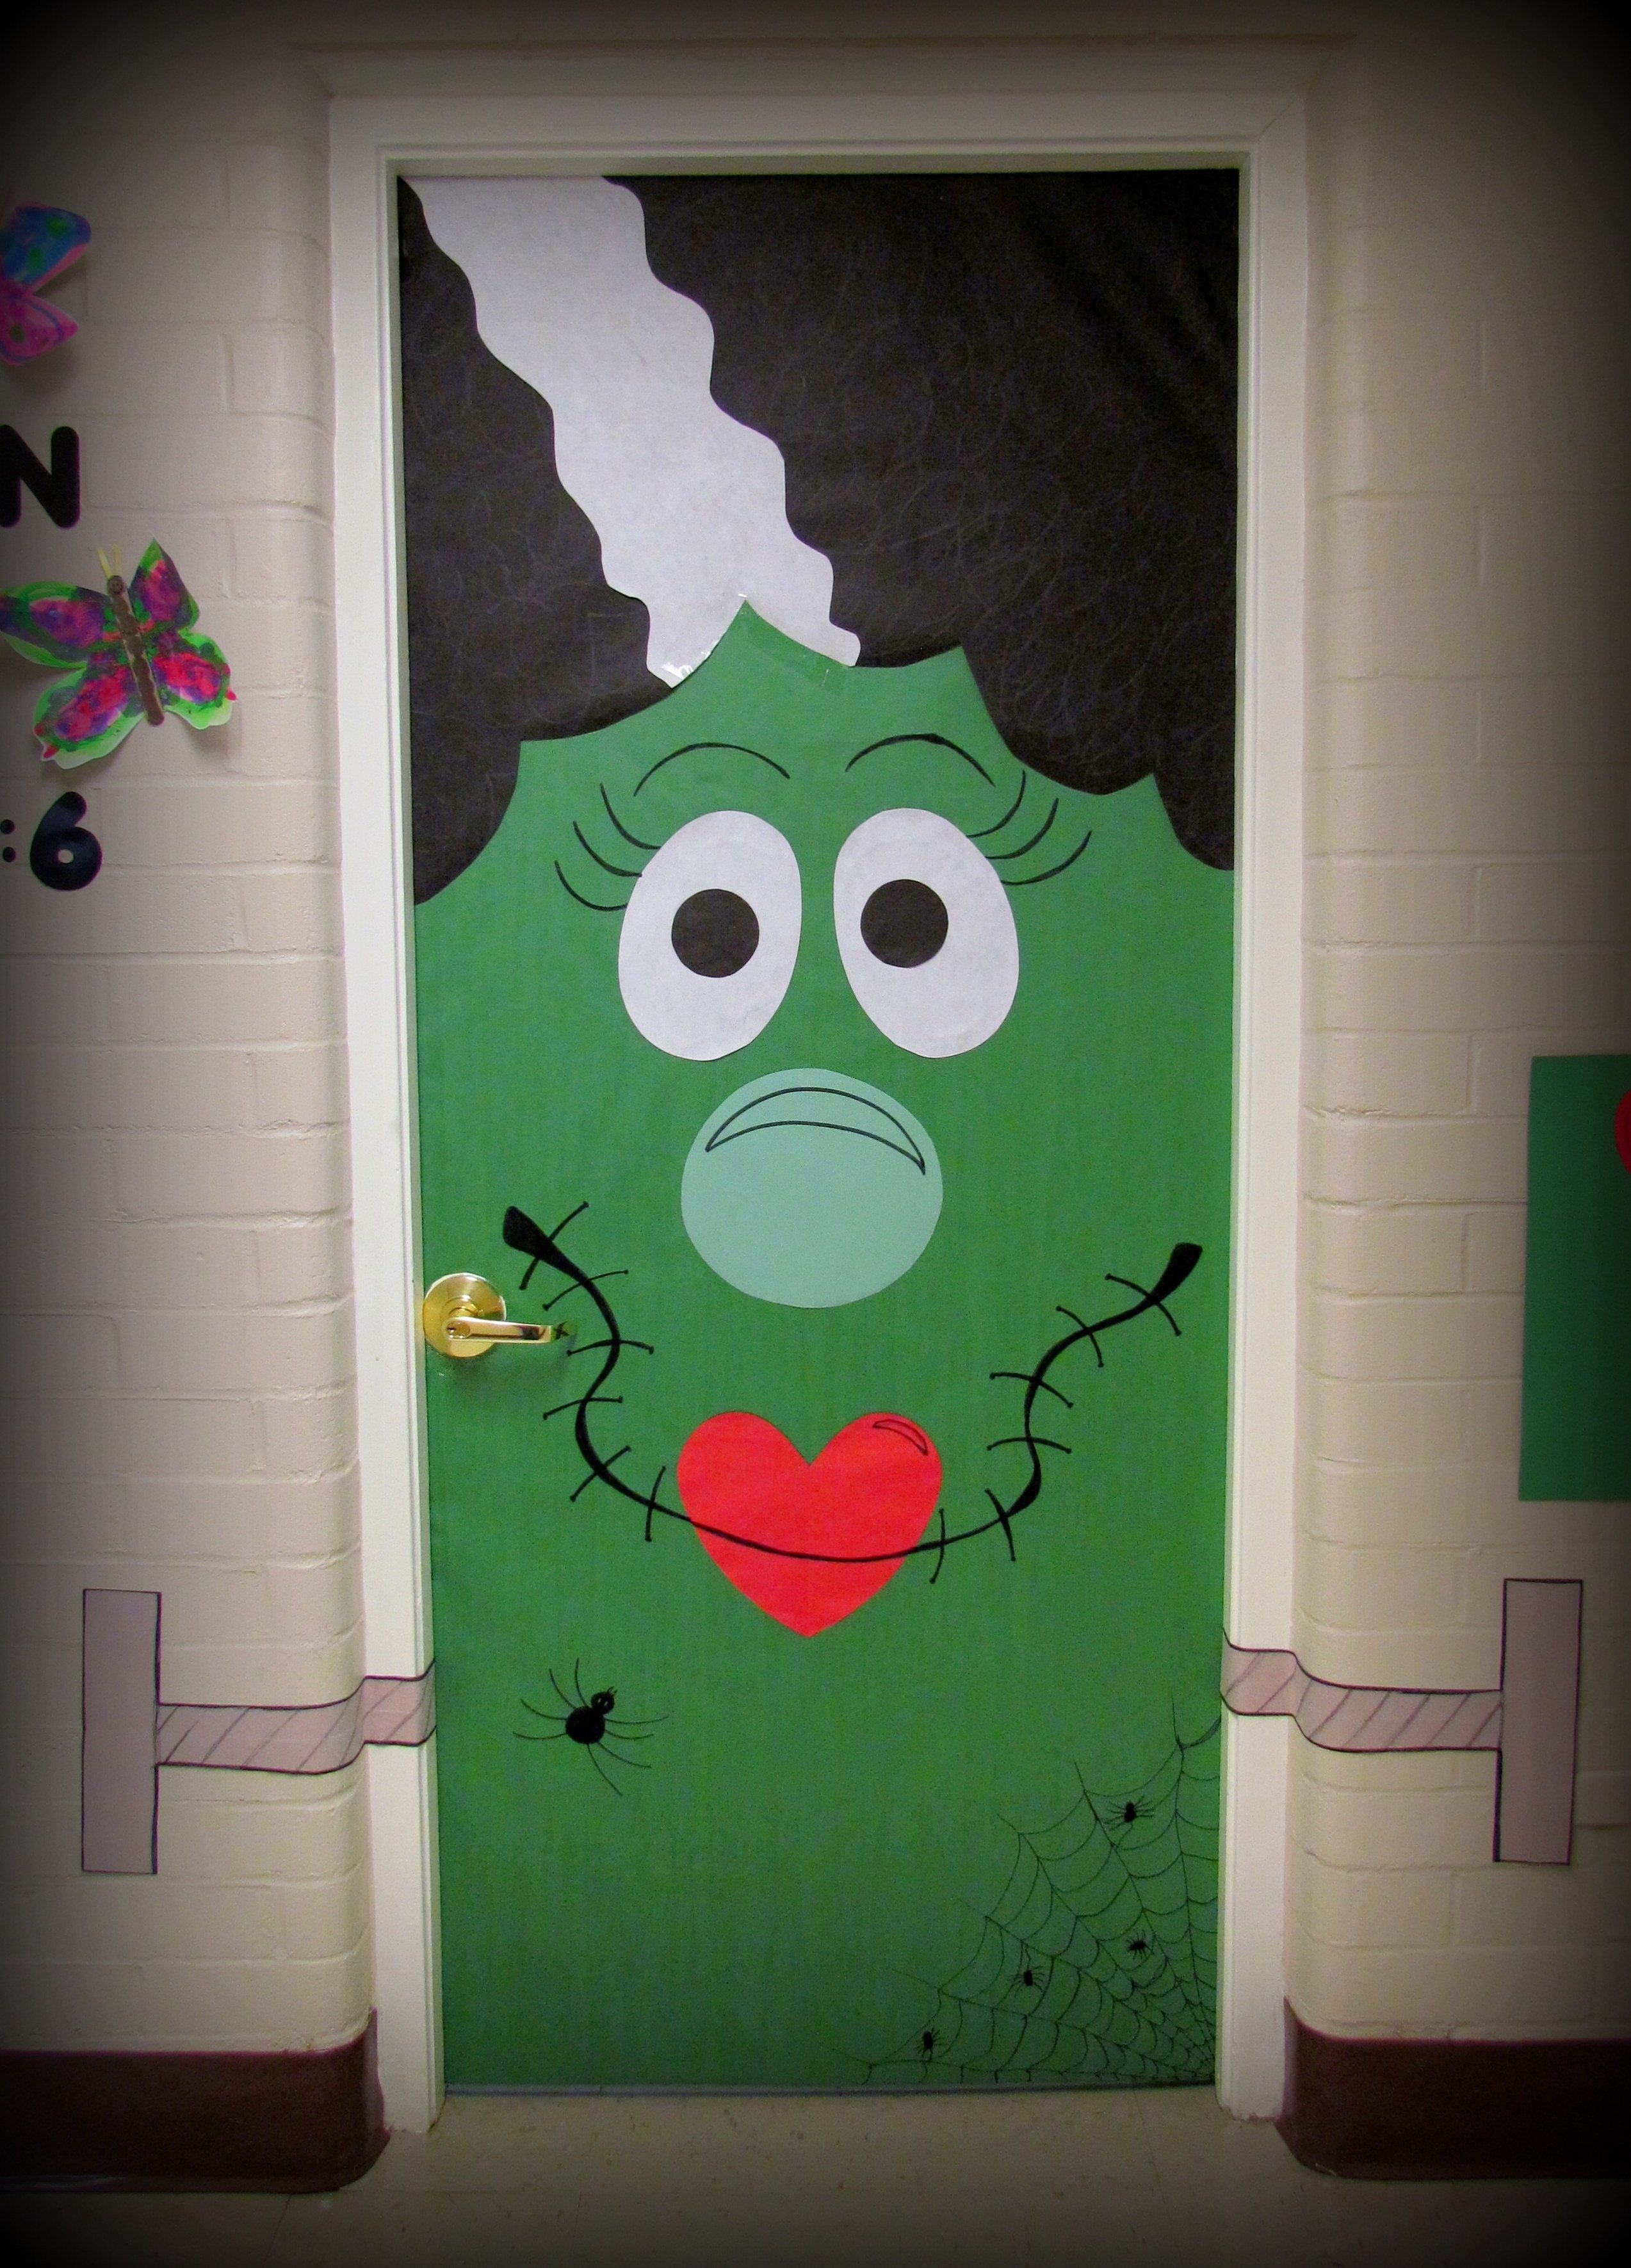 10 Fabulous Halloween Door Decorating Contest Ideas images about door decorations on pinterest classroom and fall idolza 2020